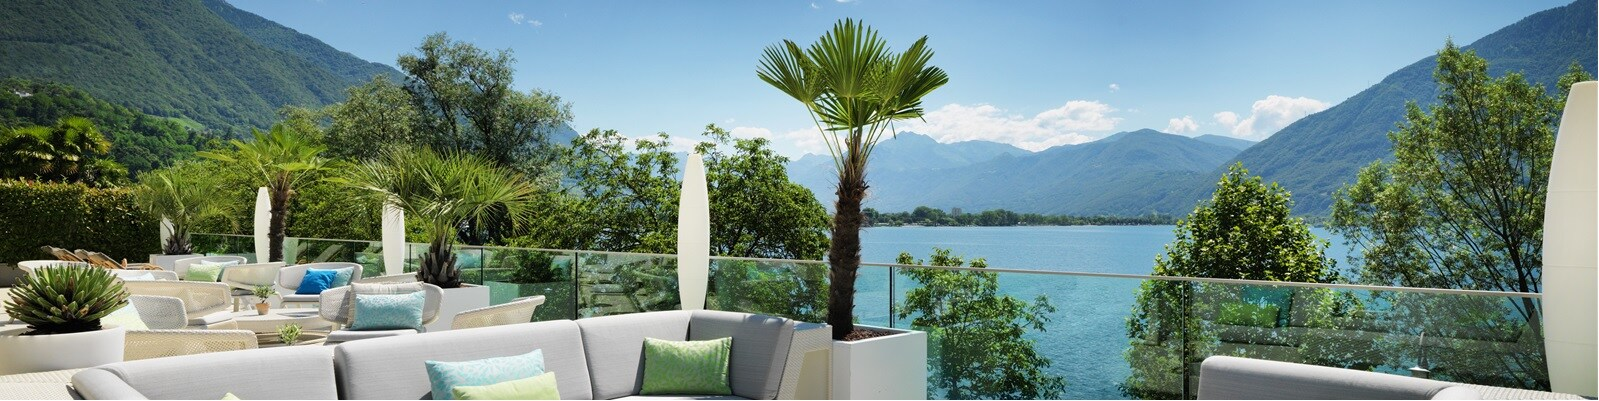 Image of lounge, overlooking lake and mountains